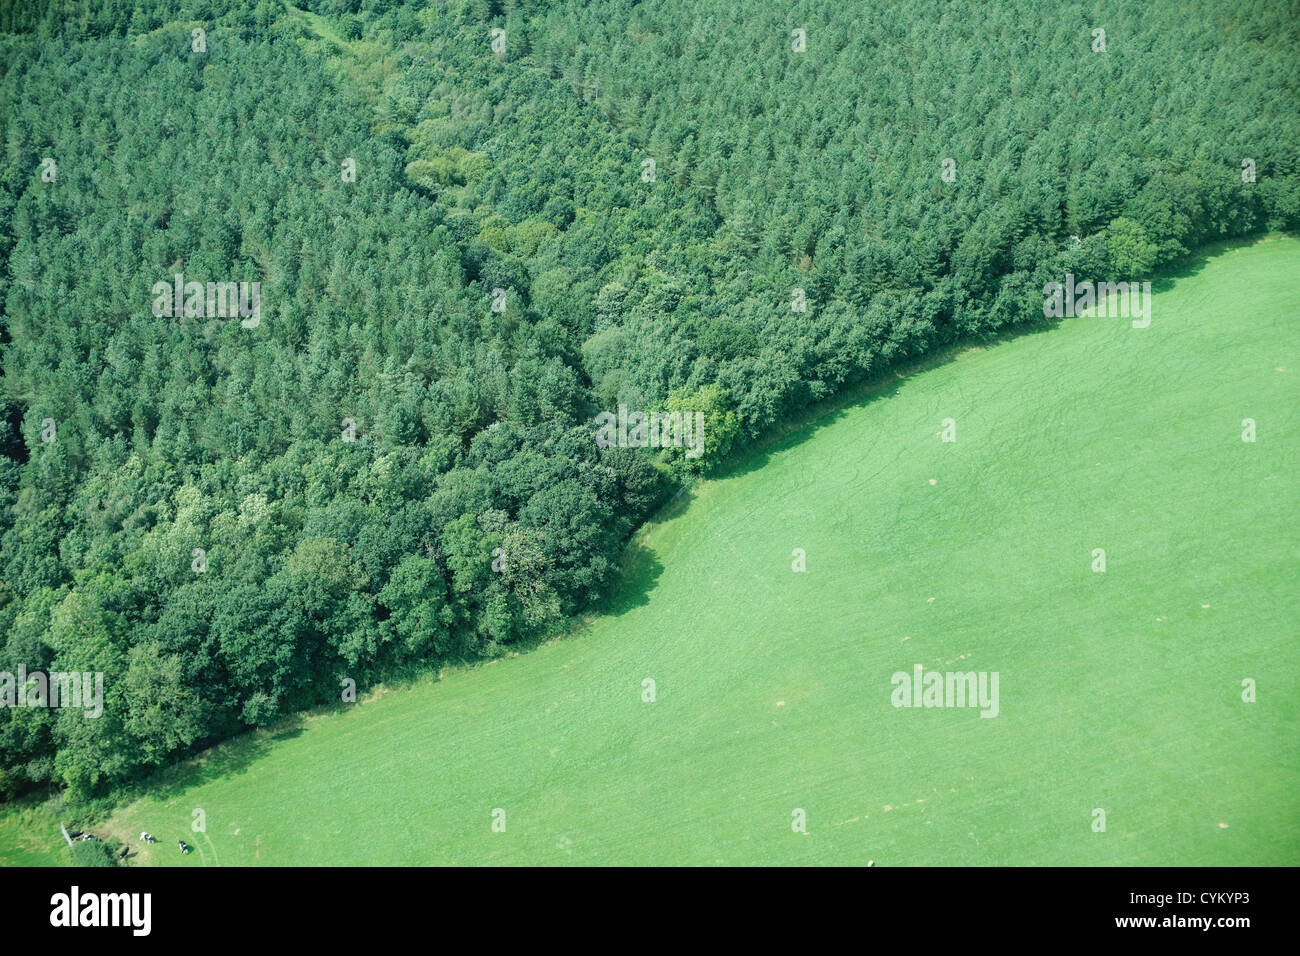 Aerial view of forest and rural field - Stock Image